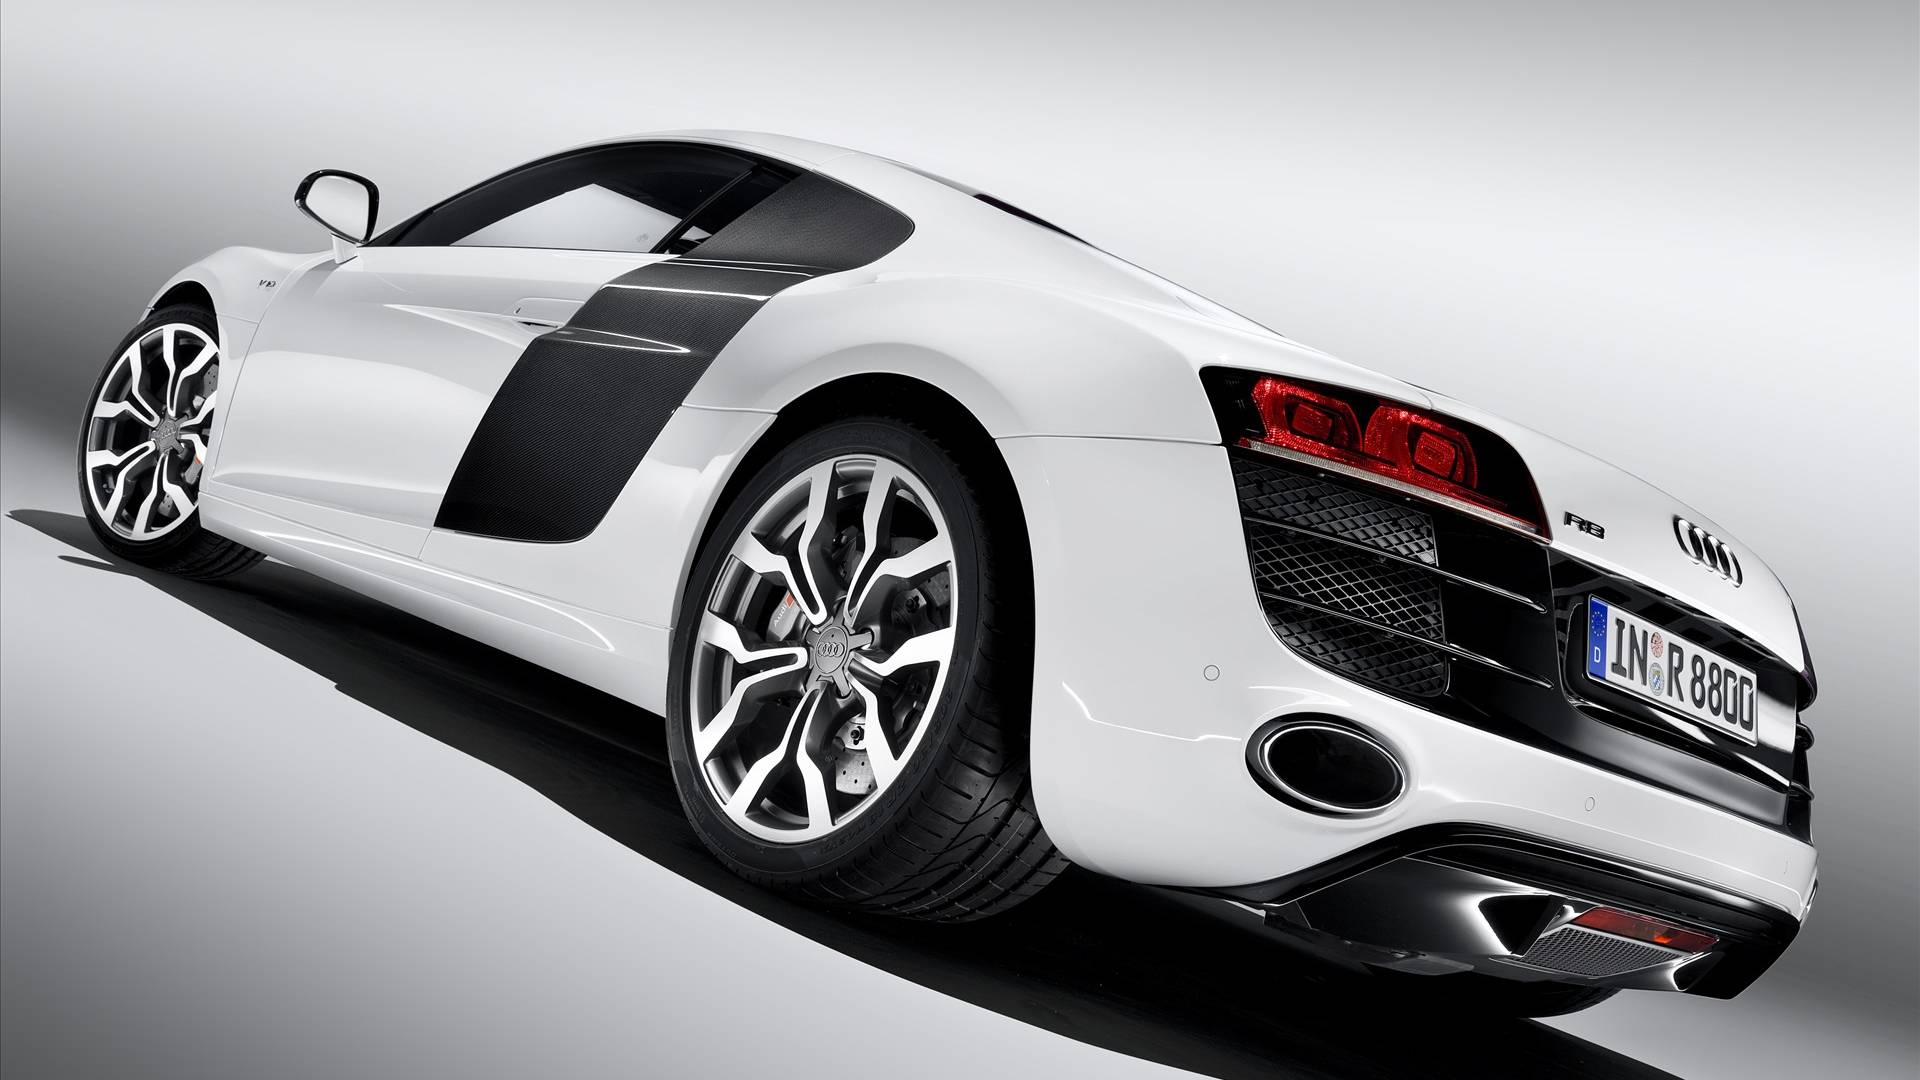 Sport Car R P O White Is Perfect For Collection 159797 Wallpaper Wallpaper